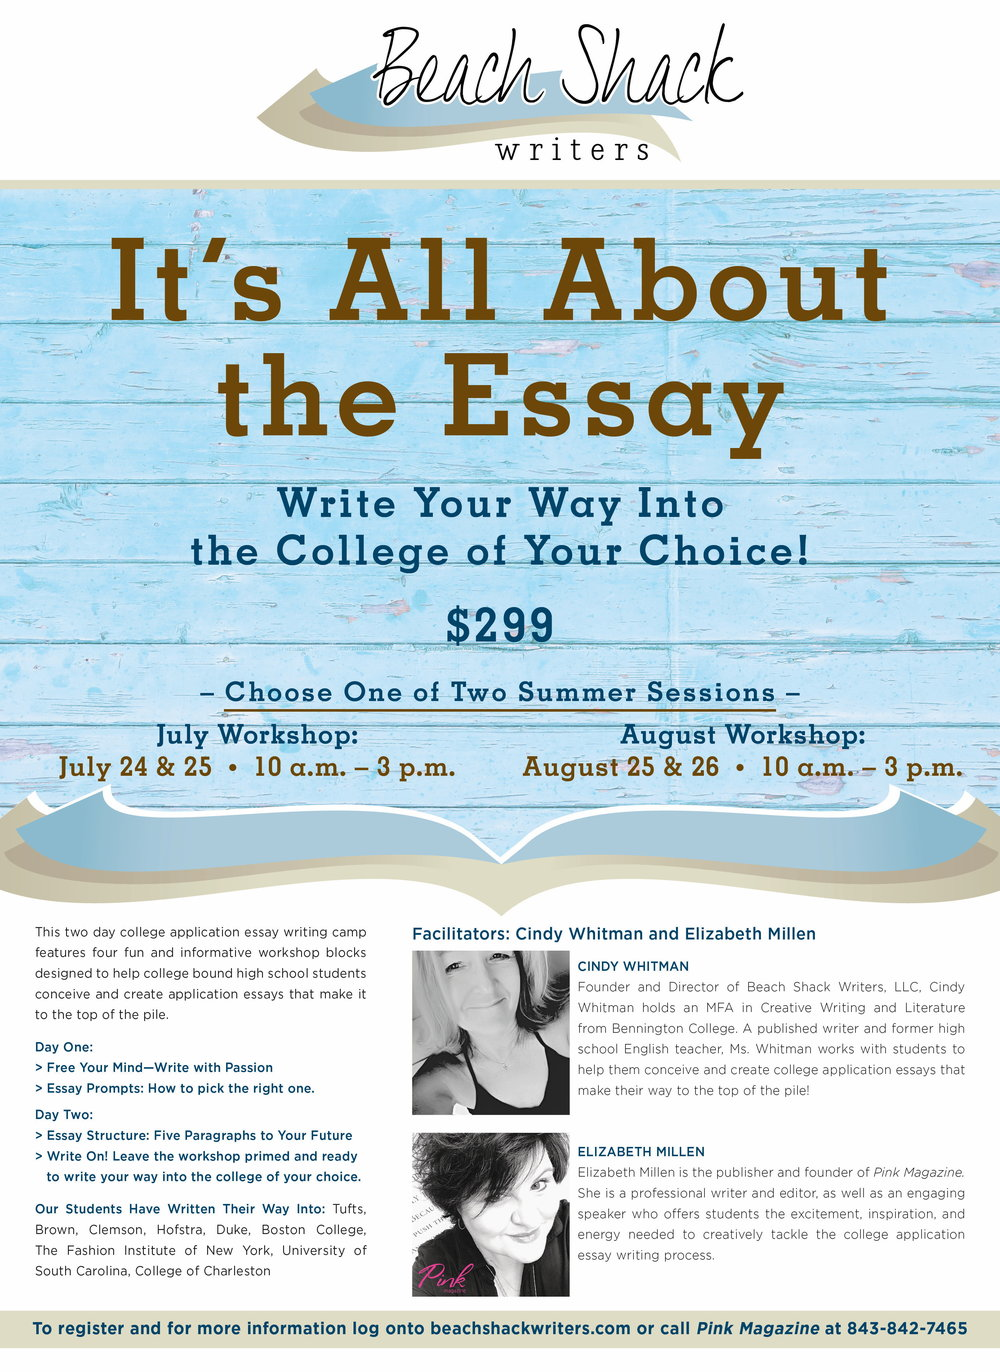 beach shack baby high school student sponsor  beach shack writers bsw essay camp flyerjpg